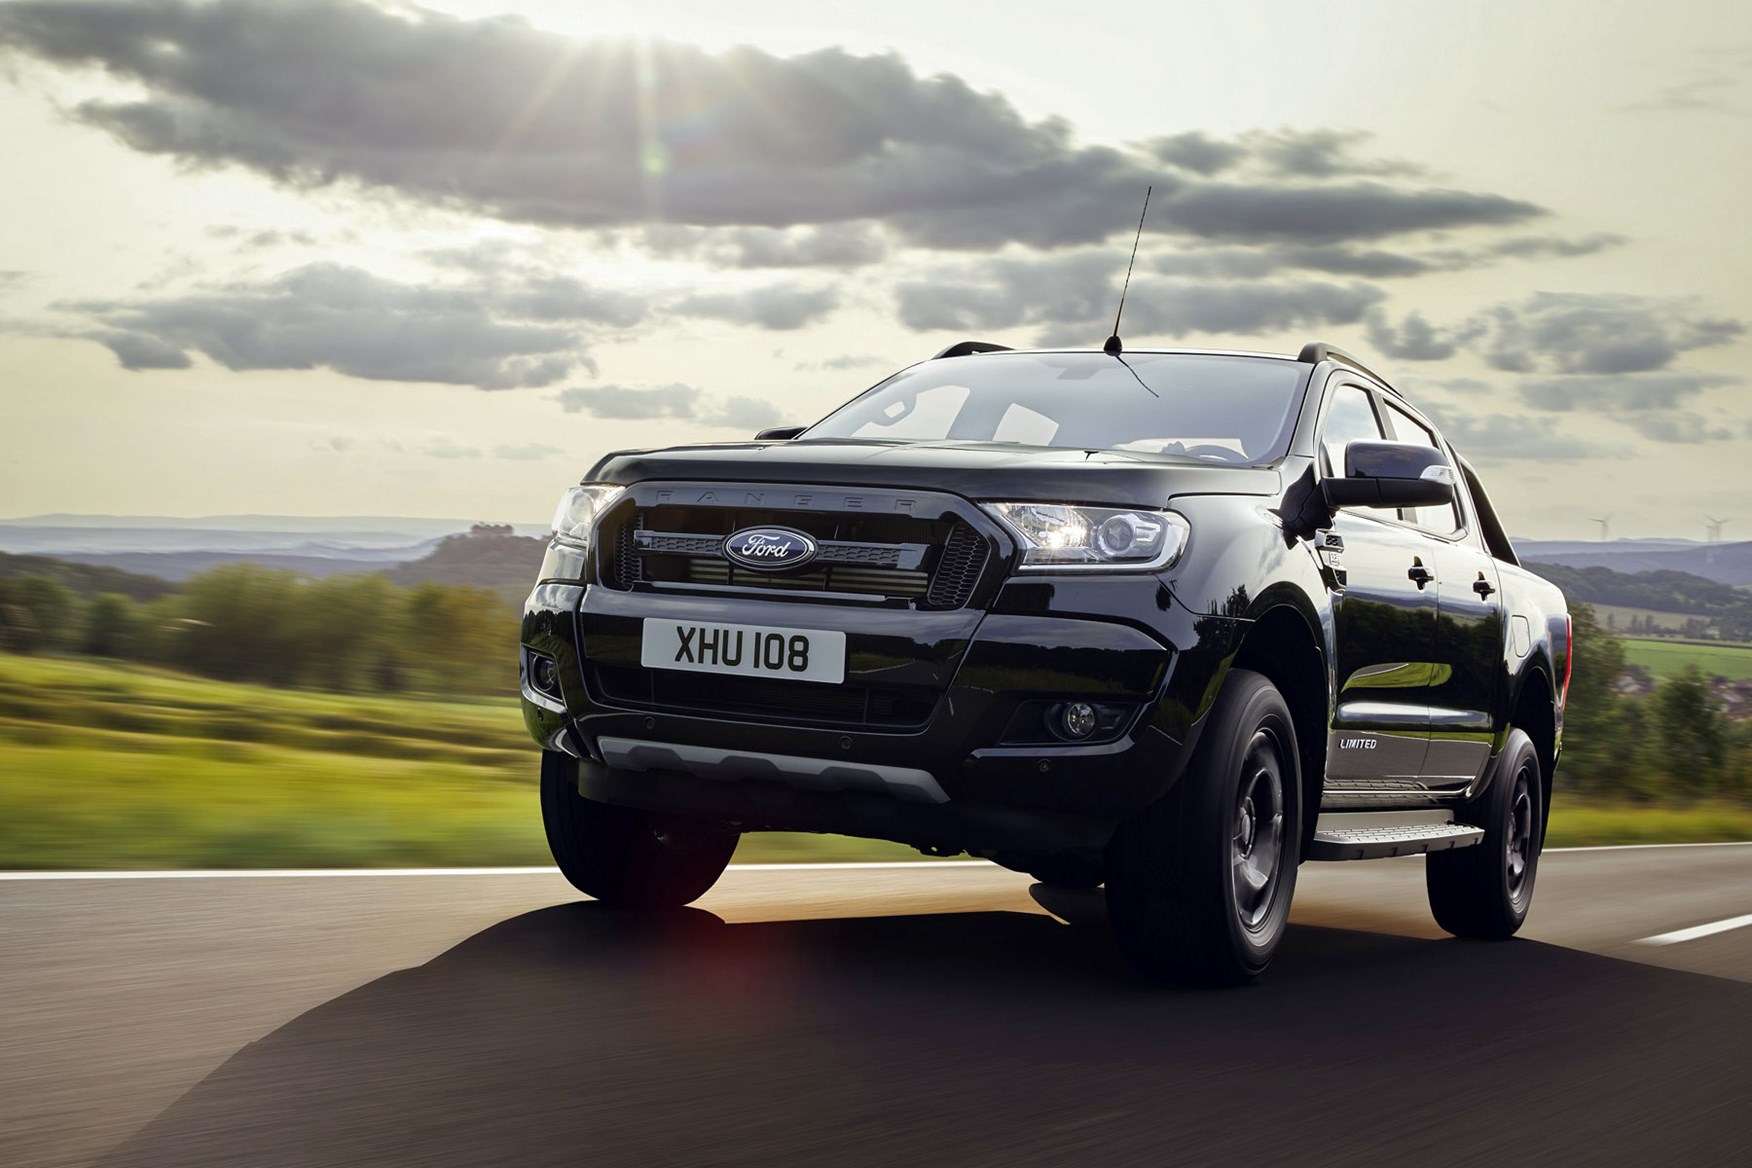 Ford Ranger Black Edition review - driving